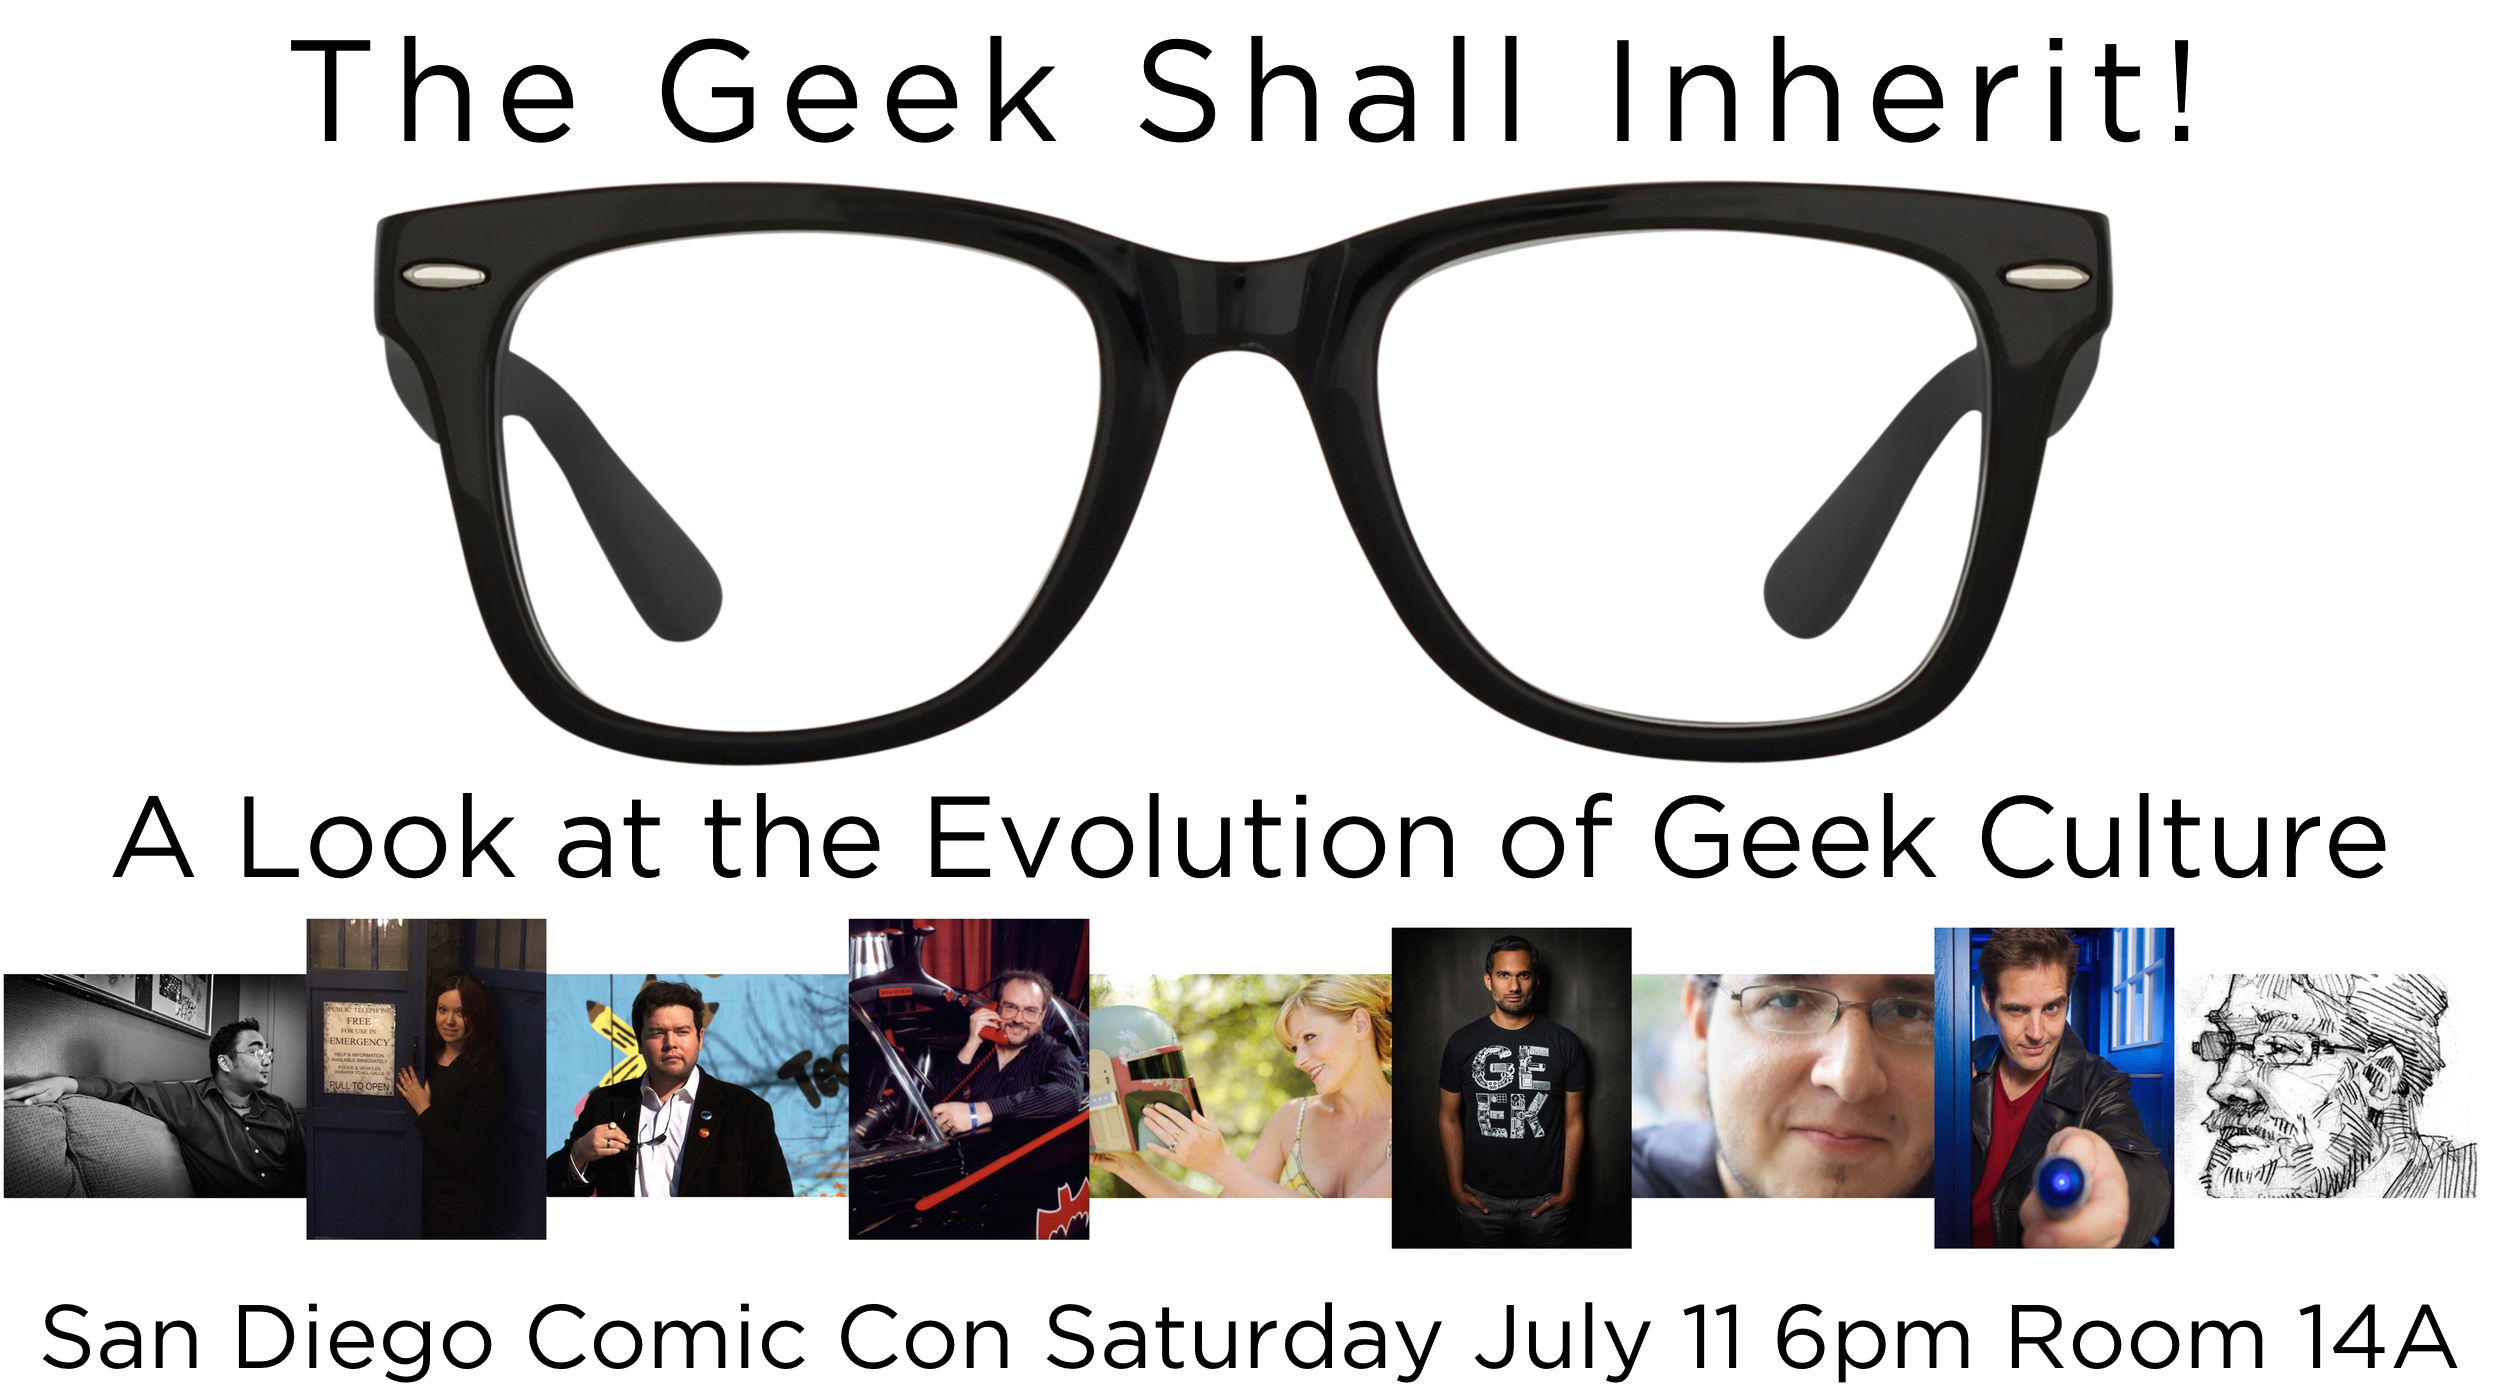 The Geek Shall Inherit: A Look at the Evolution of Geek Culture at San Diego Comic Con